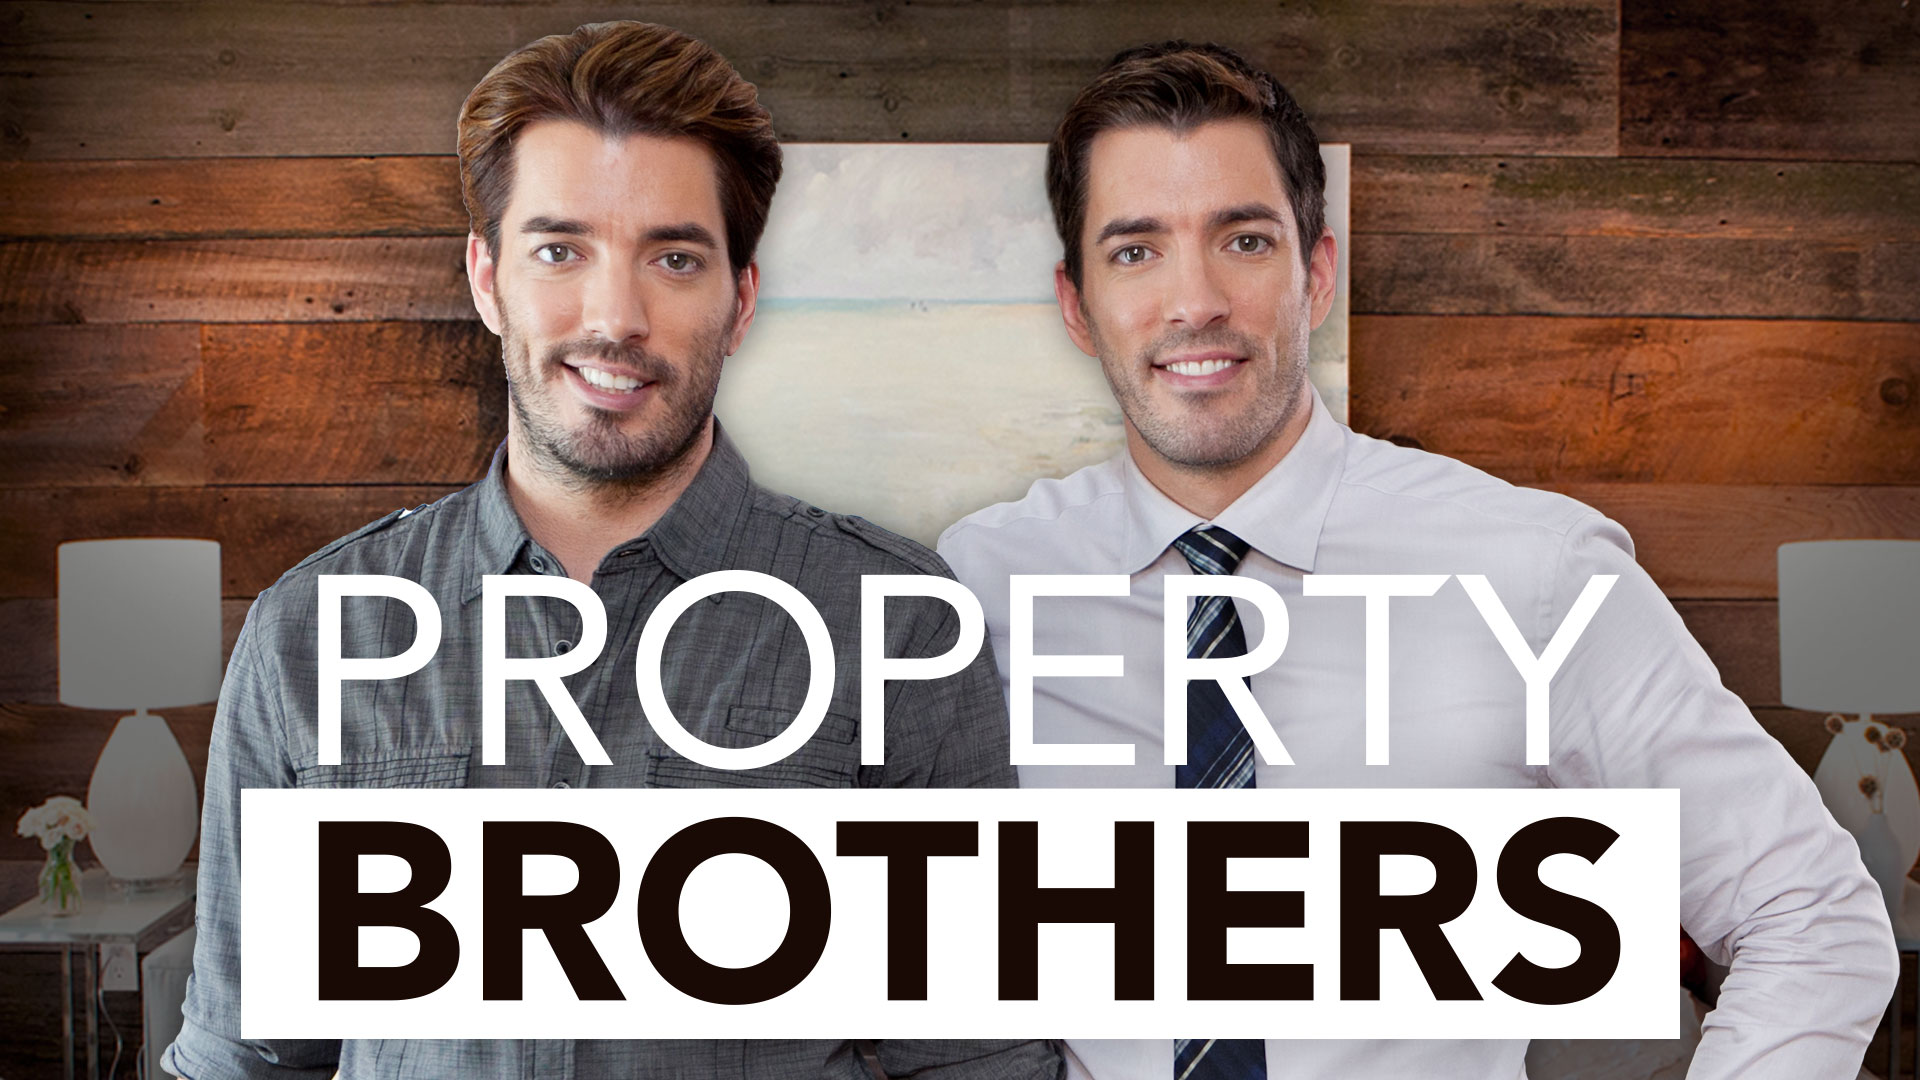 Can You Email The Property Brothers